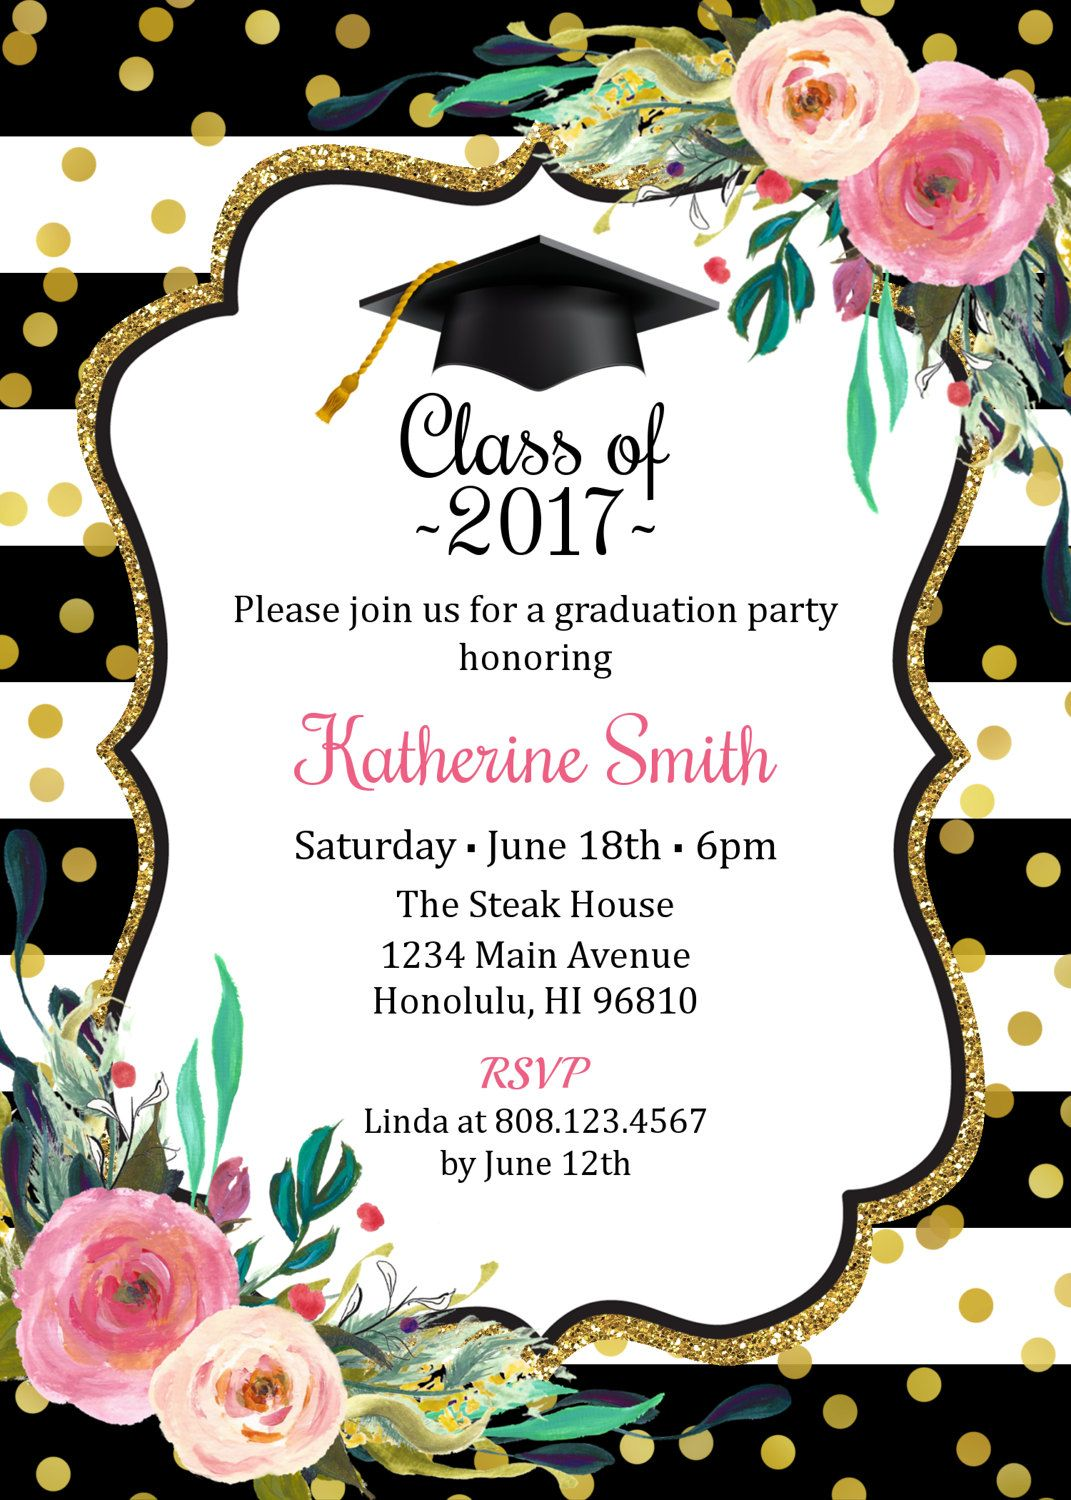 graduation invitation for girls  graduation party invitation  high school graduation  college